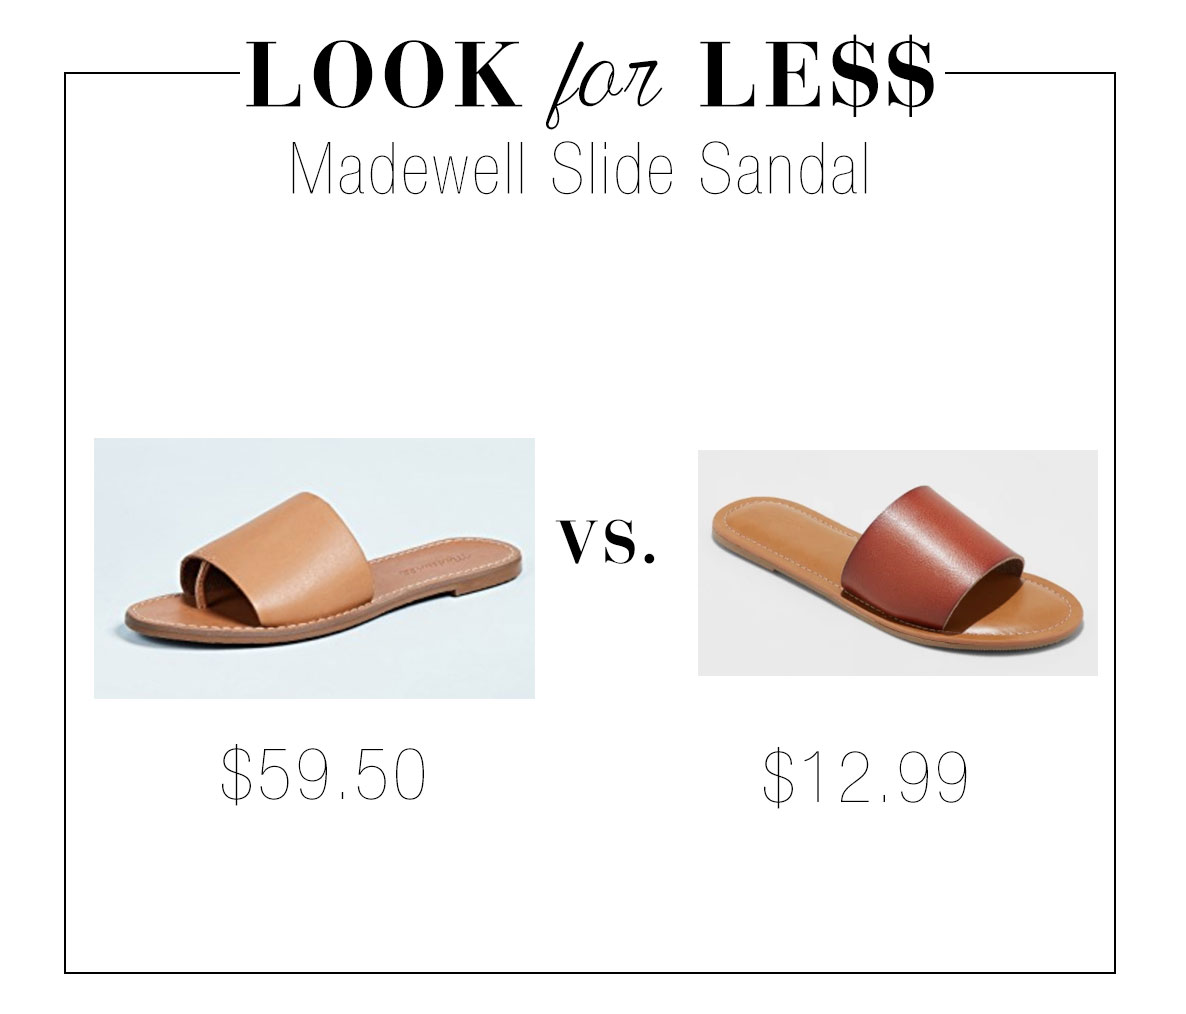 Madewell slide sandal look for less